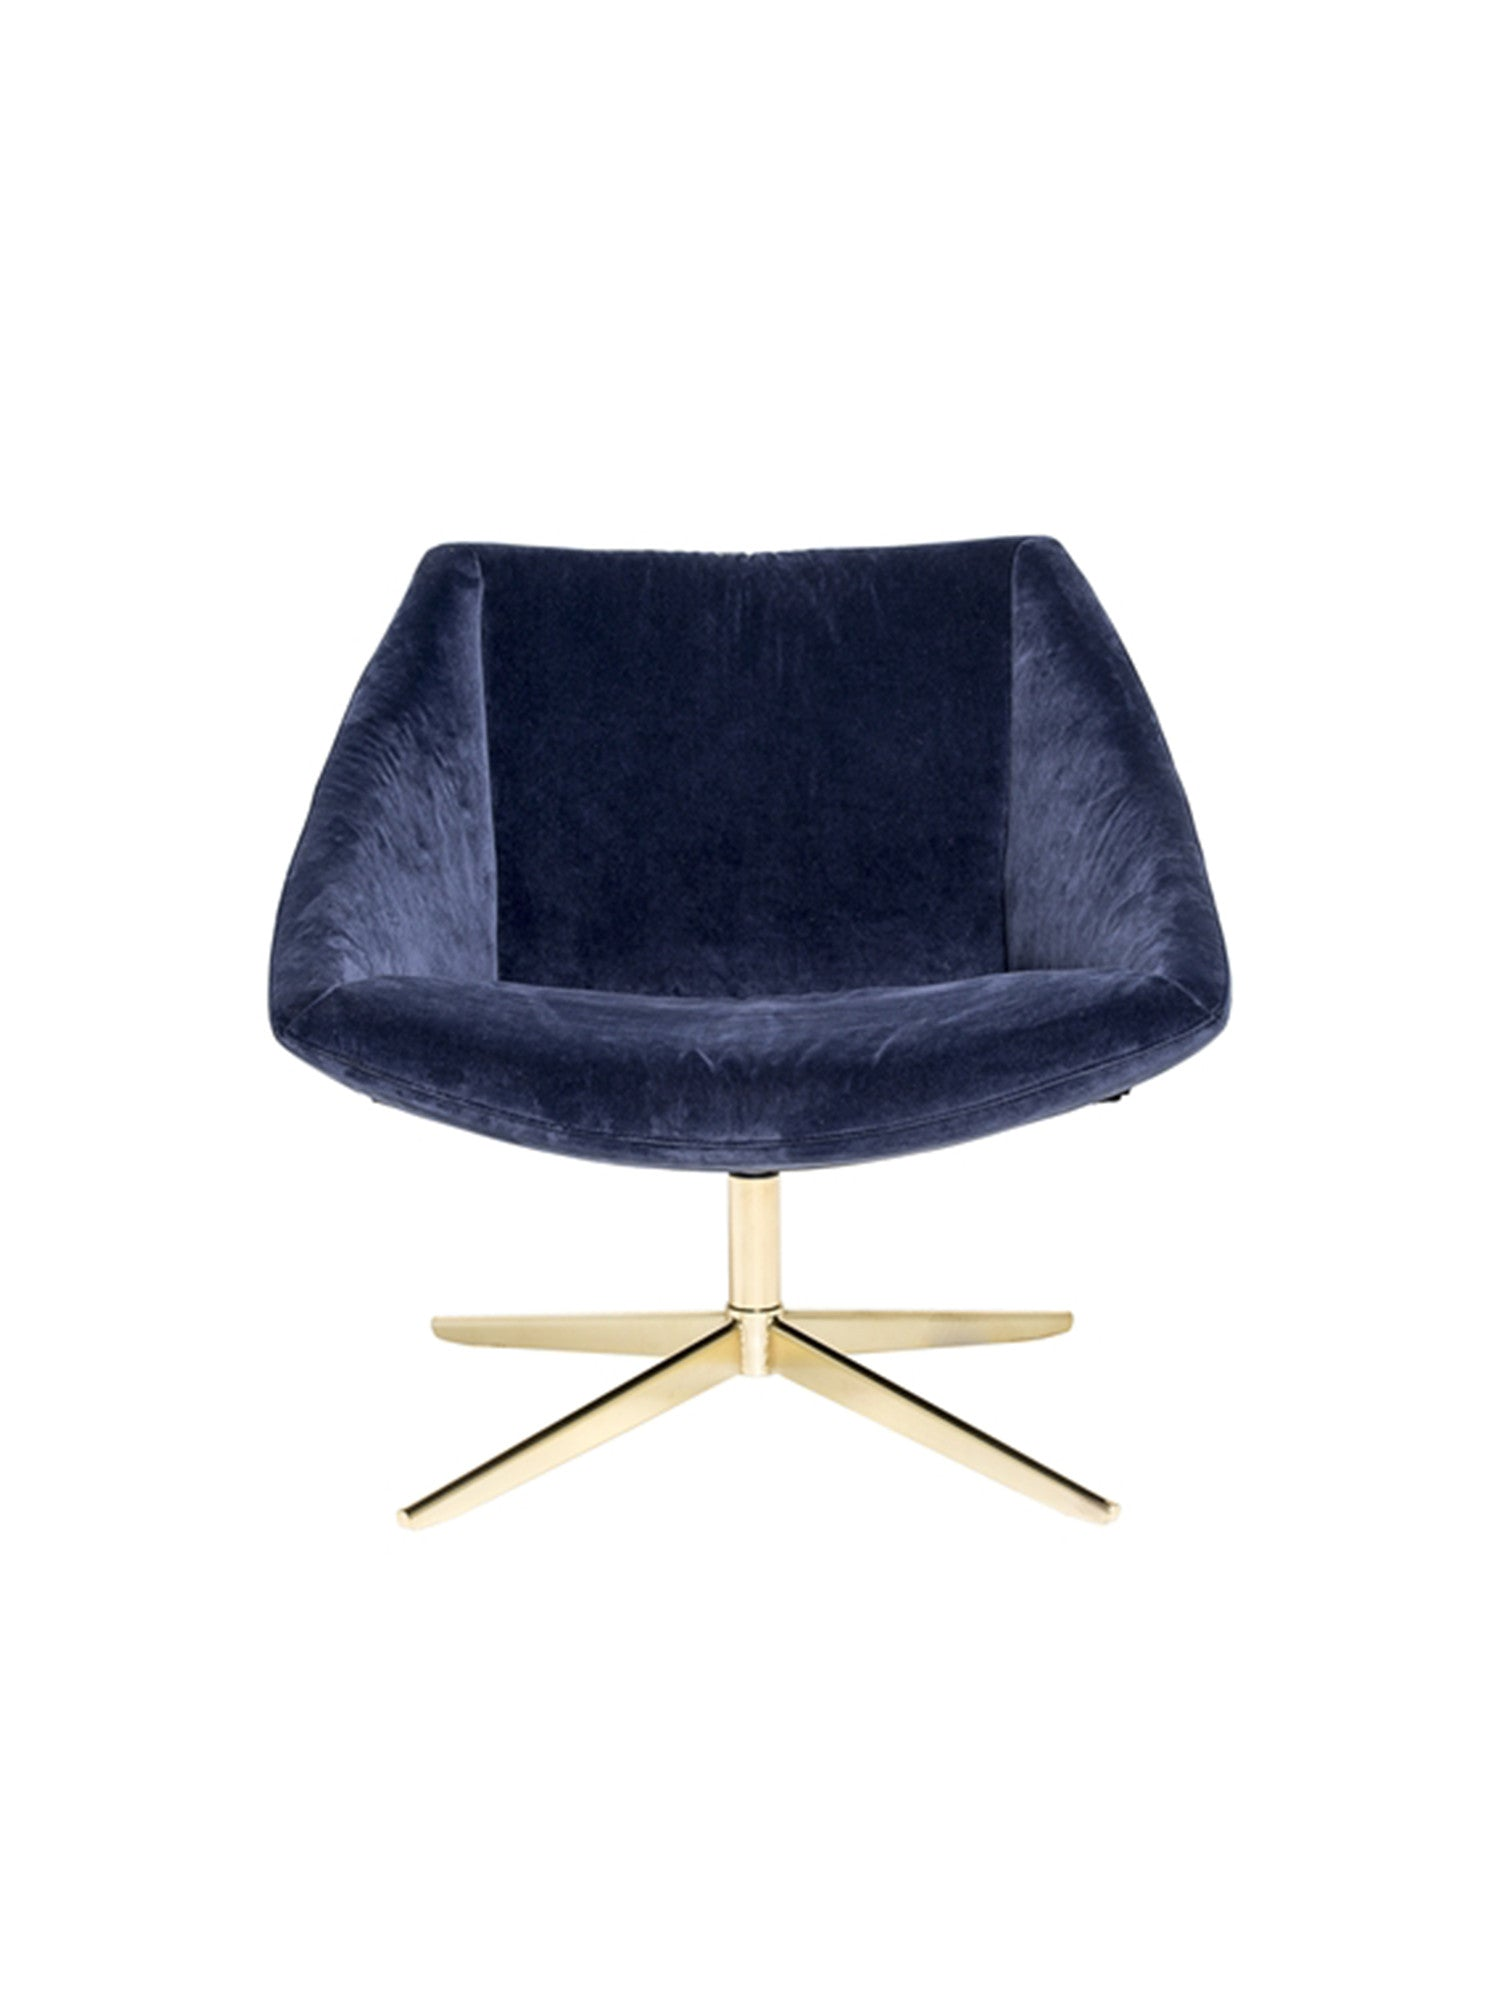 The Elegant Chair - 1 Seater Velvet Blue #50185632